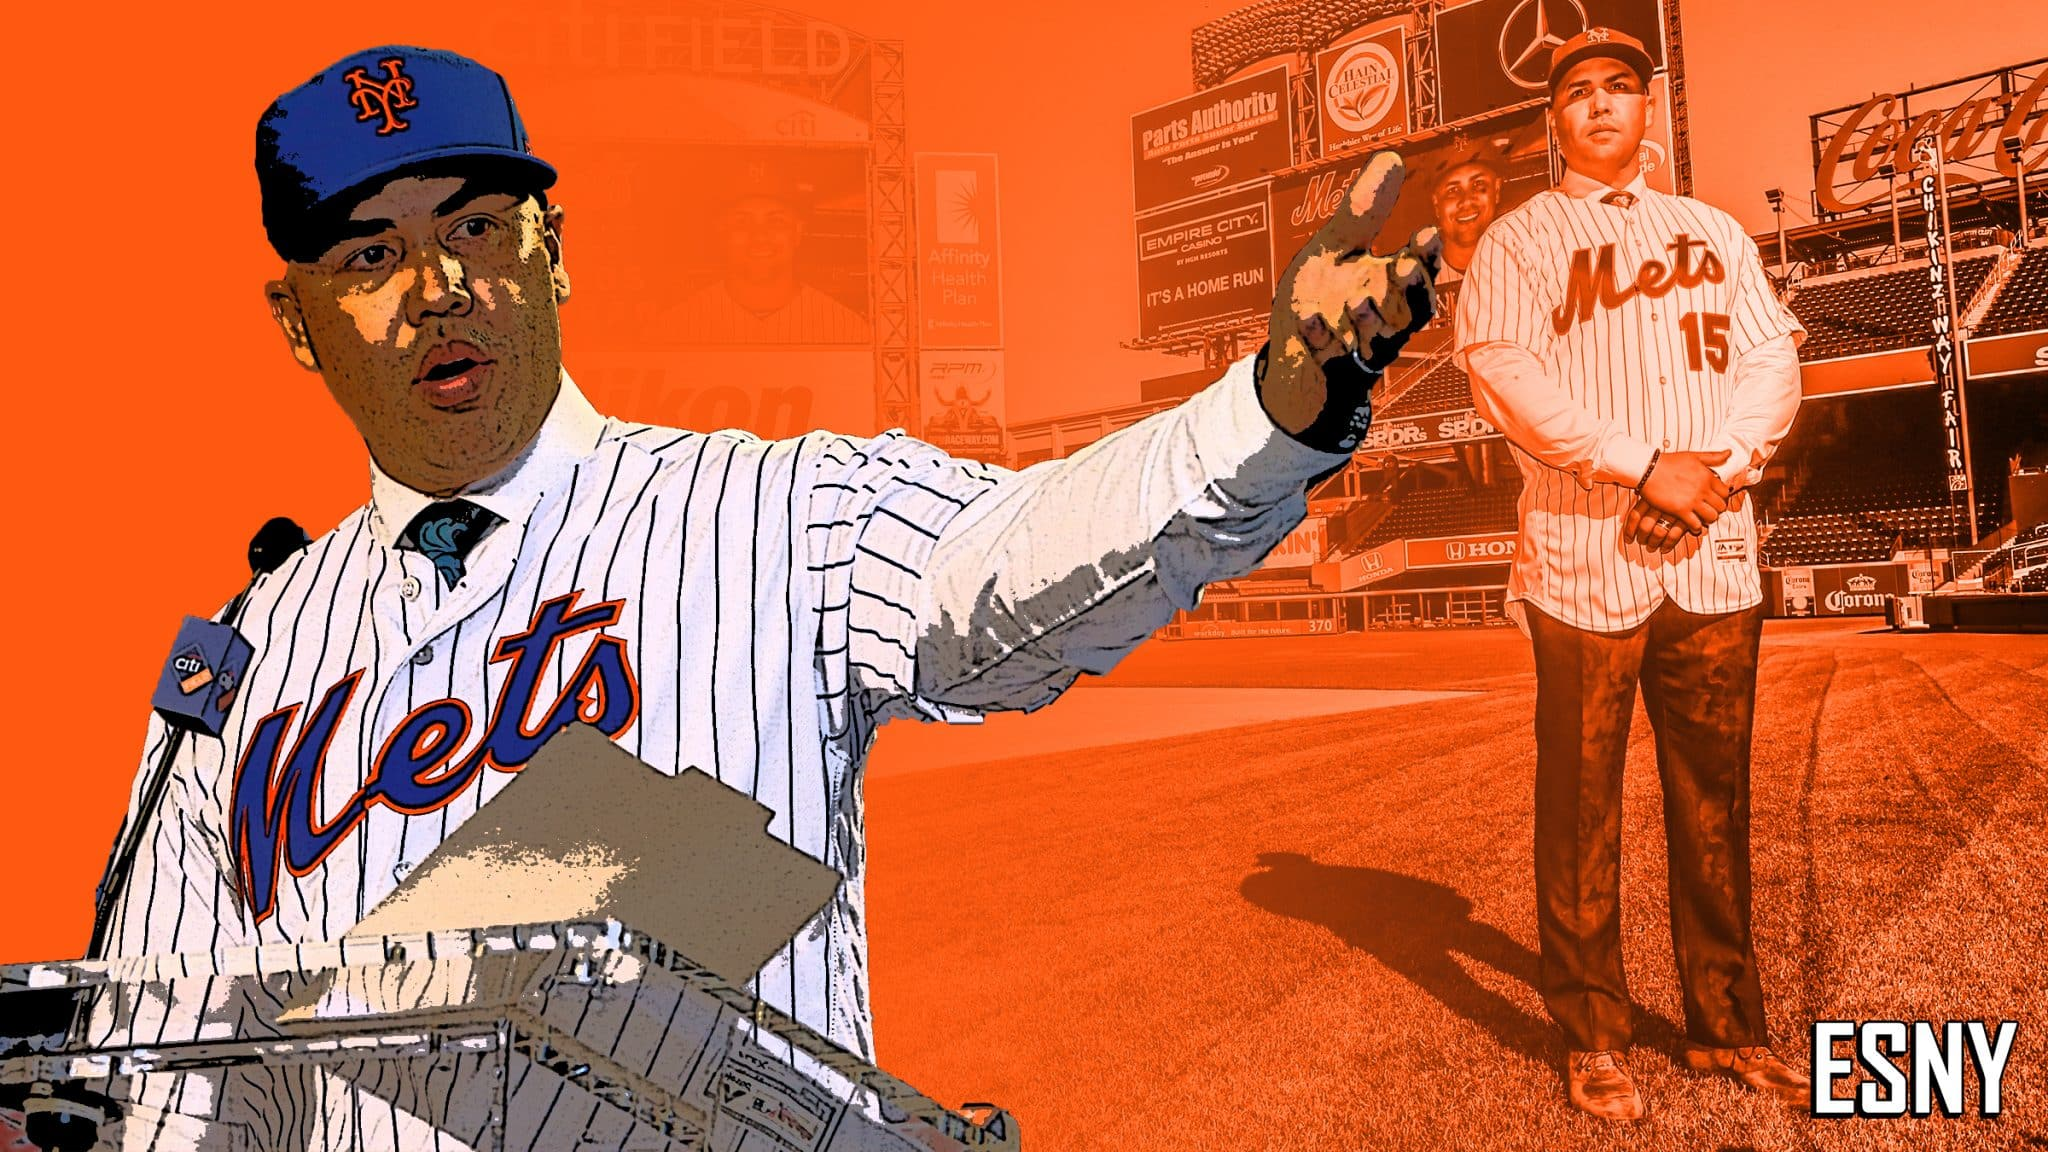 New York Mets Carlos Beltran Is An Apex Predator And A Born